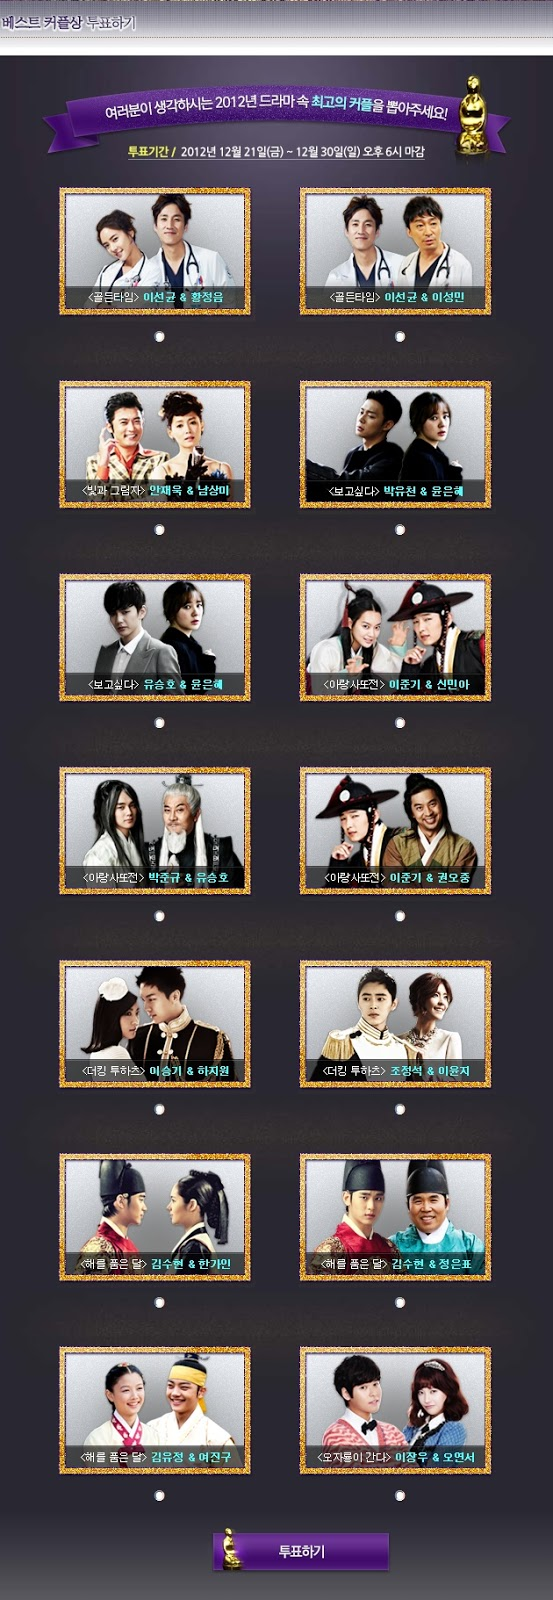 Best Couple Nominations for KBS, SBS & MBC Drama Awards 2012